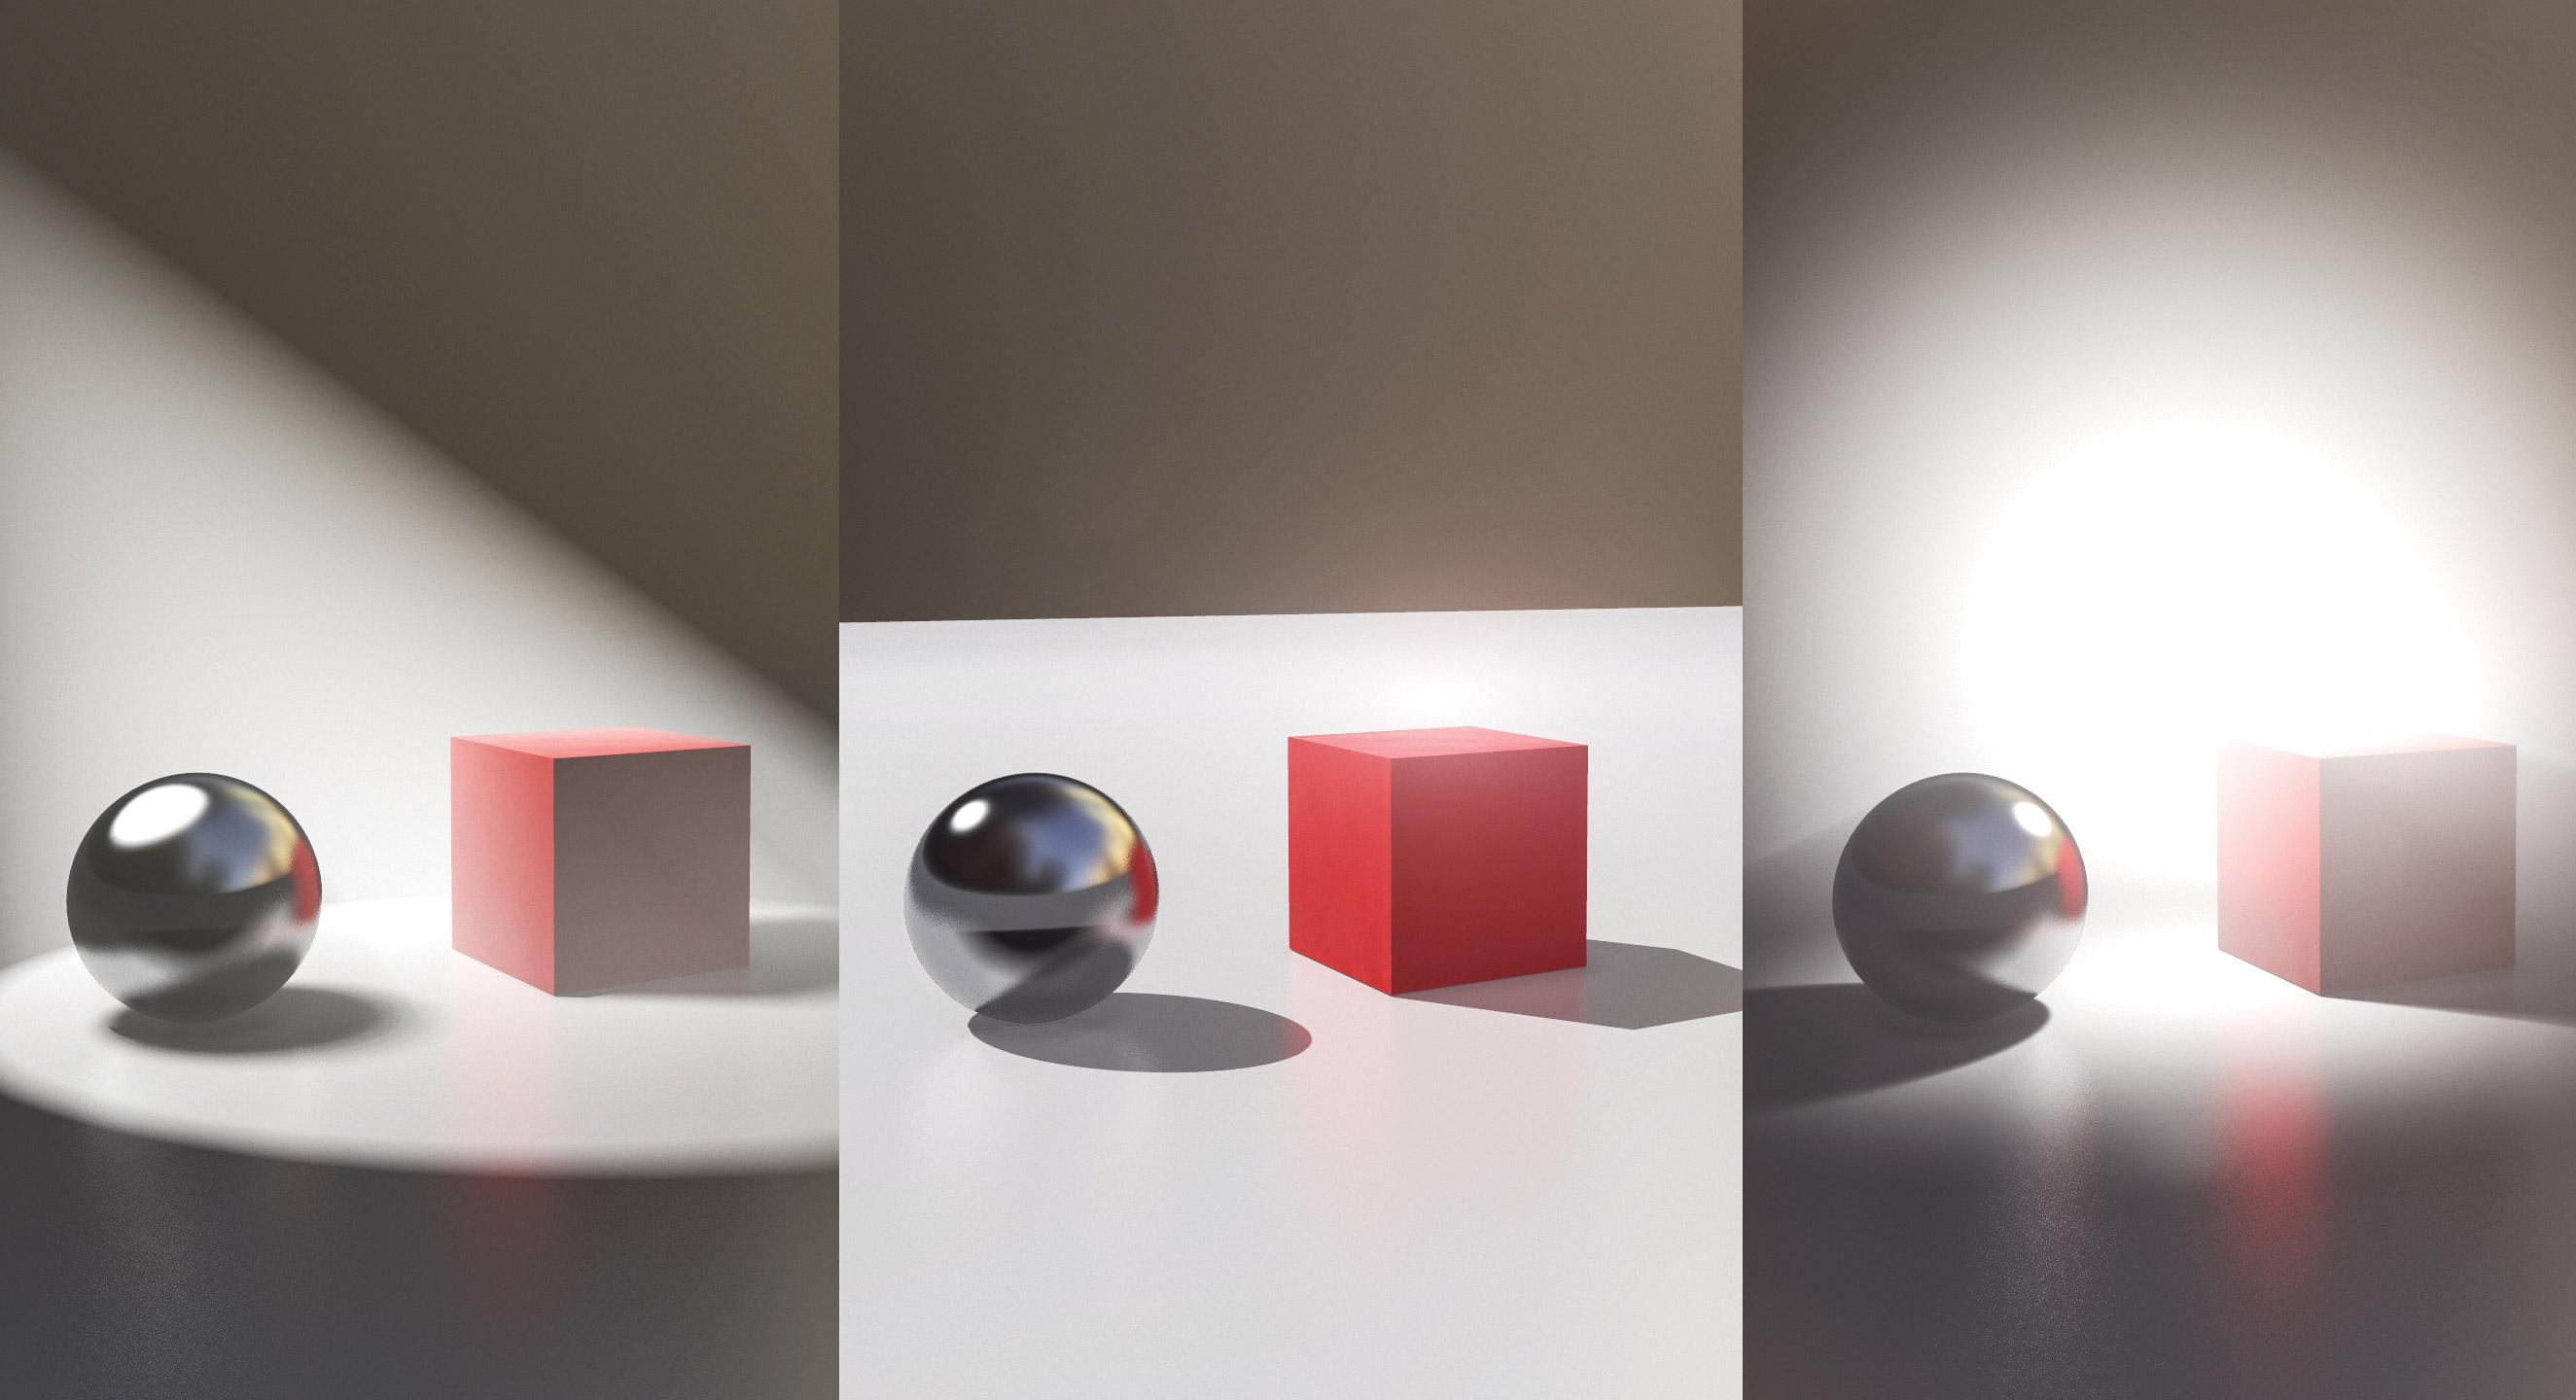 Three sets of cubes and spheres interacting with different lighting angles